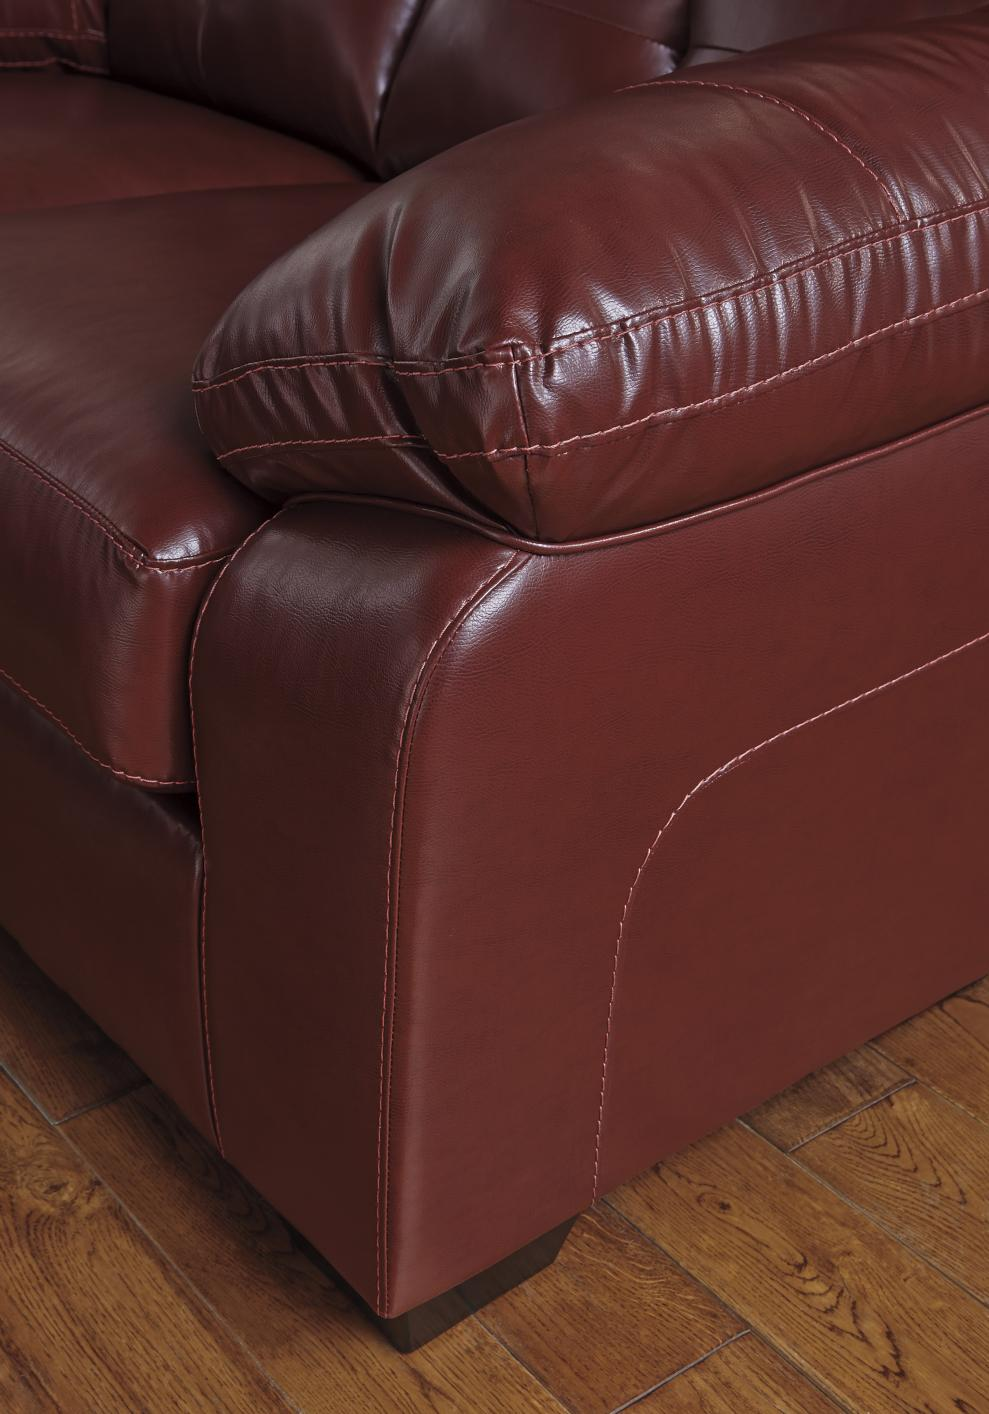 Ashley Red Leather Sofa Ashley Furniture Red Leather Sofa Kenyalfashionblog Thesofa